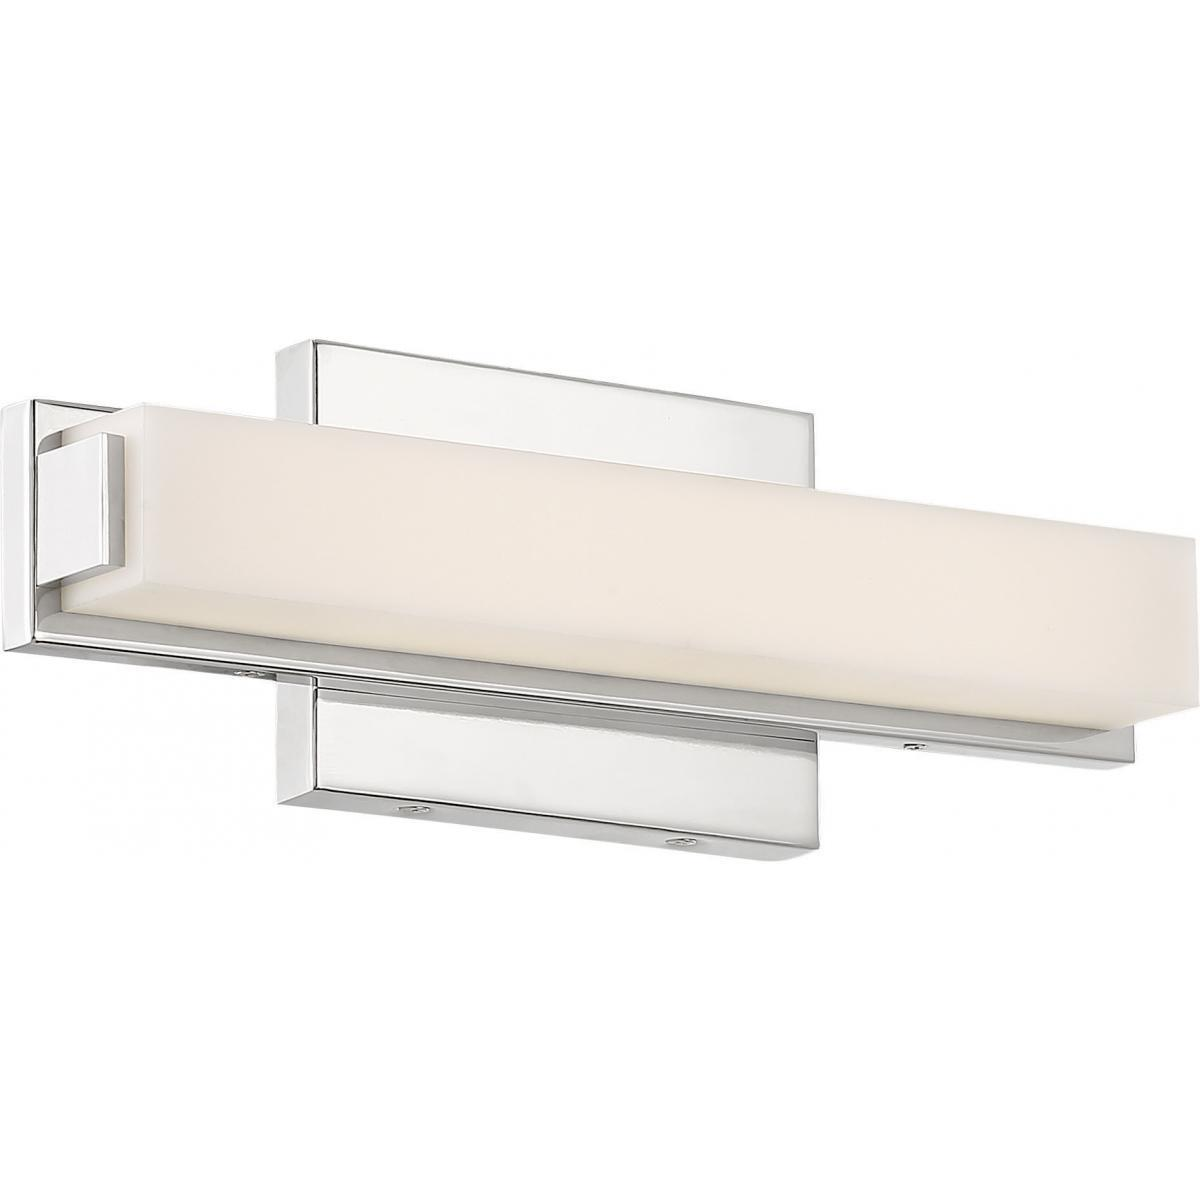 LED Recessed Lights